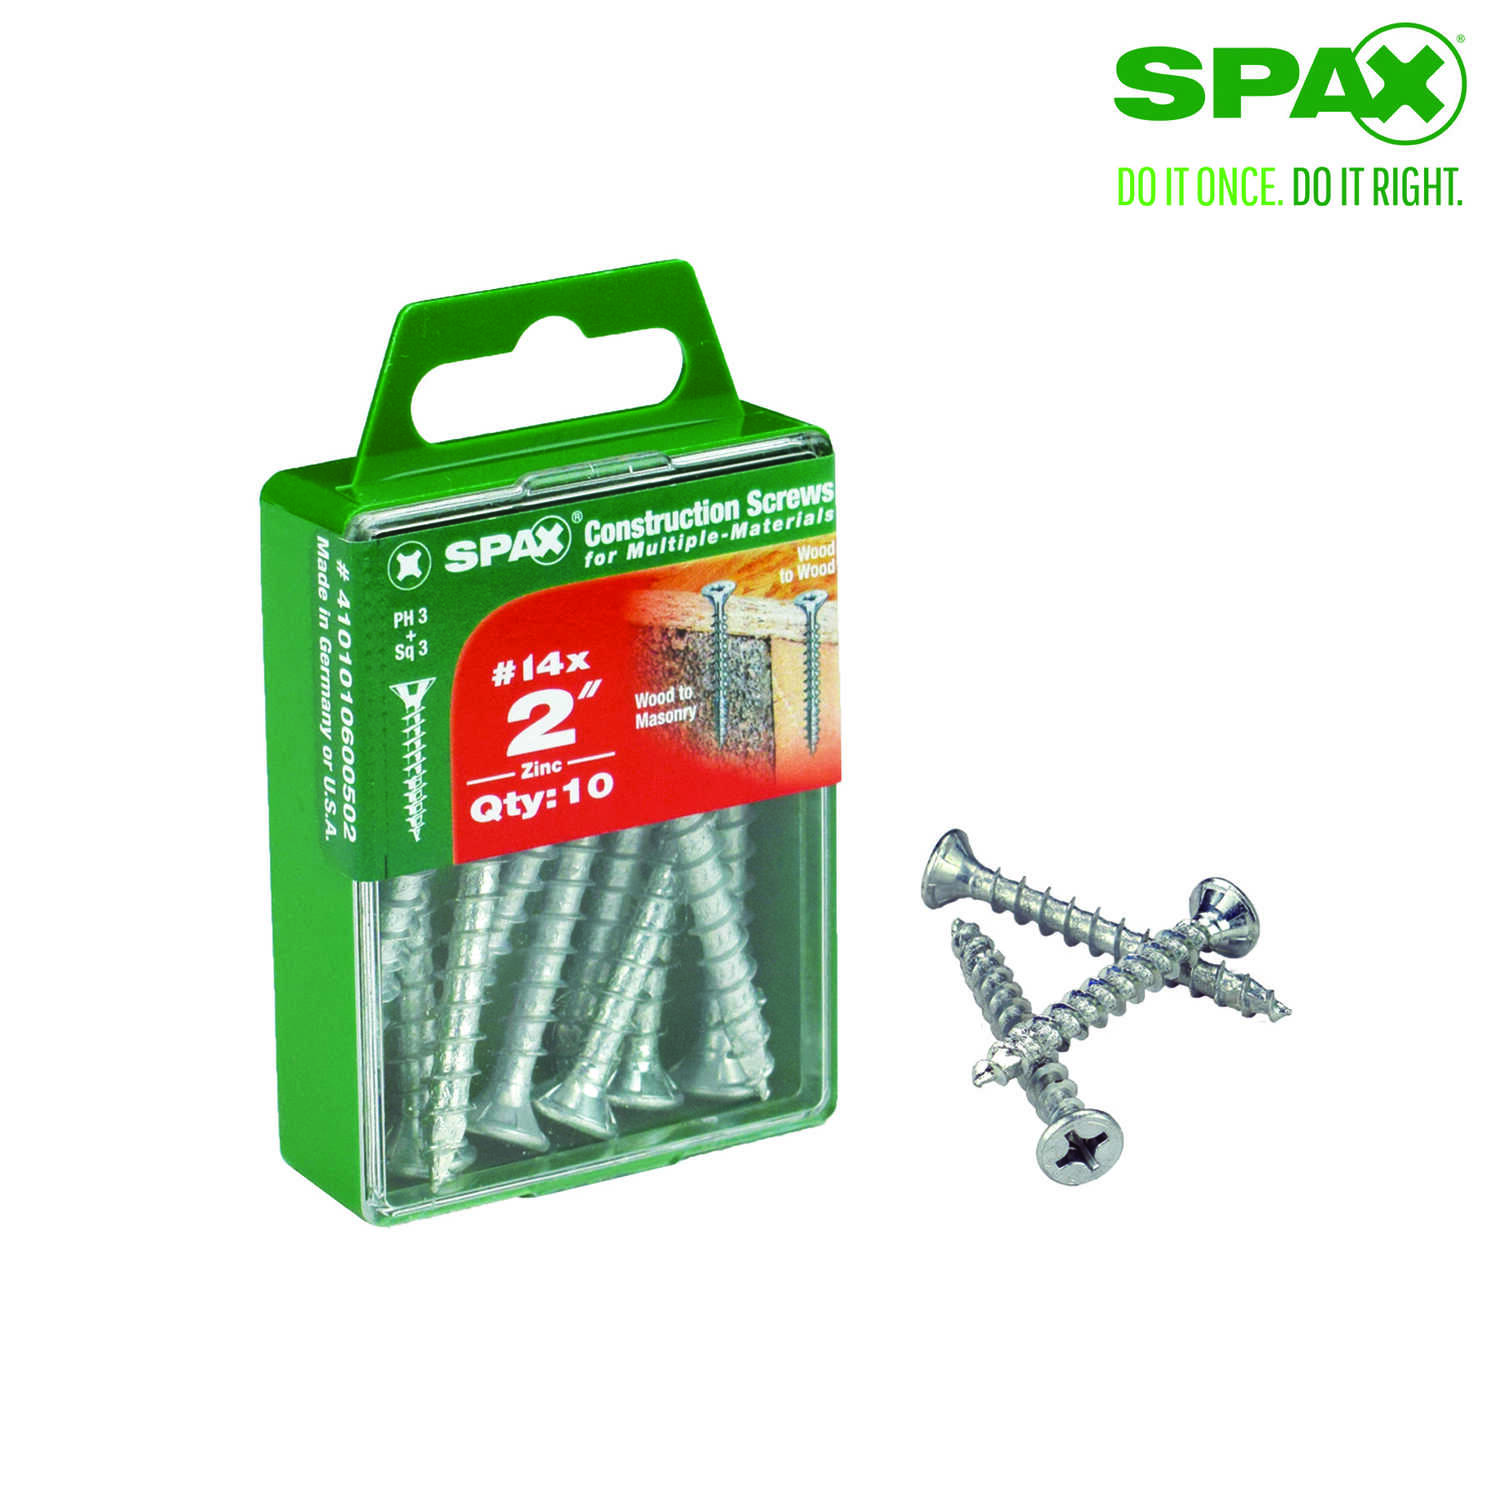 SPAX  No. 14   x 2 in. L Phillips/Square  Flat  Zinc-Plated  Steel  Multi-Purpose Screw  10 each